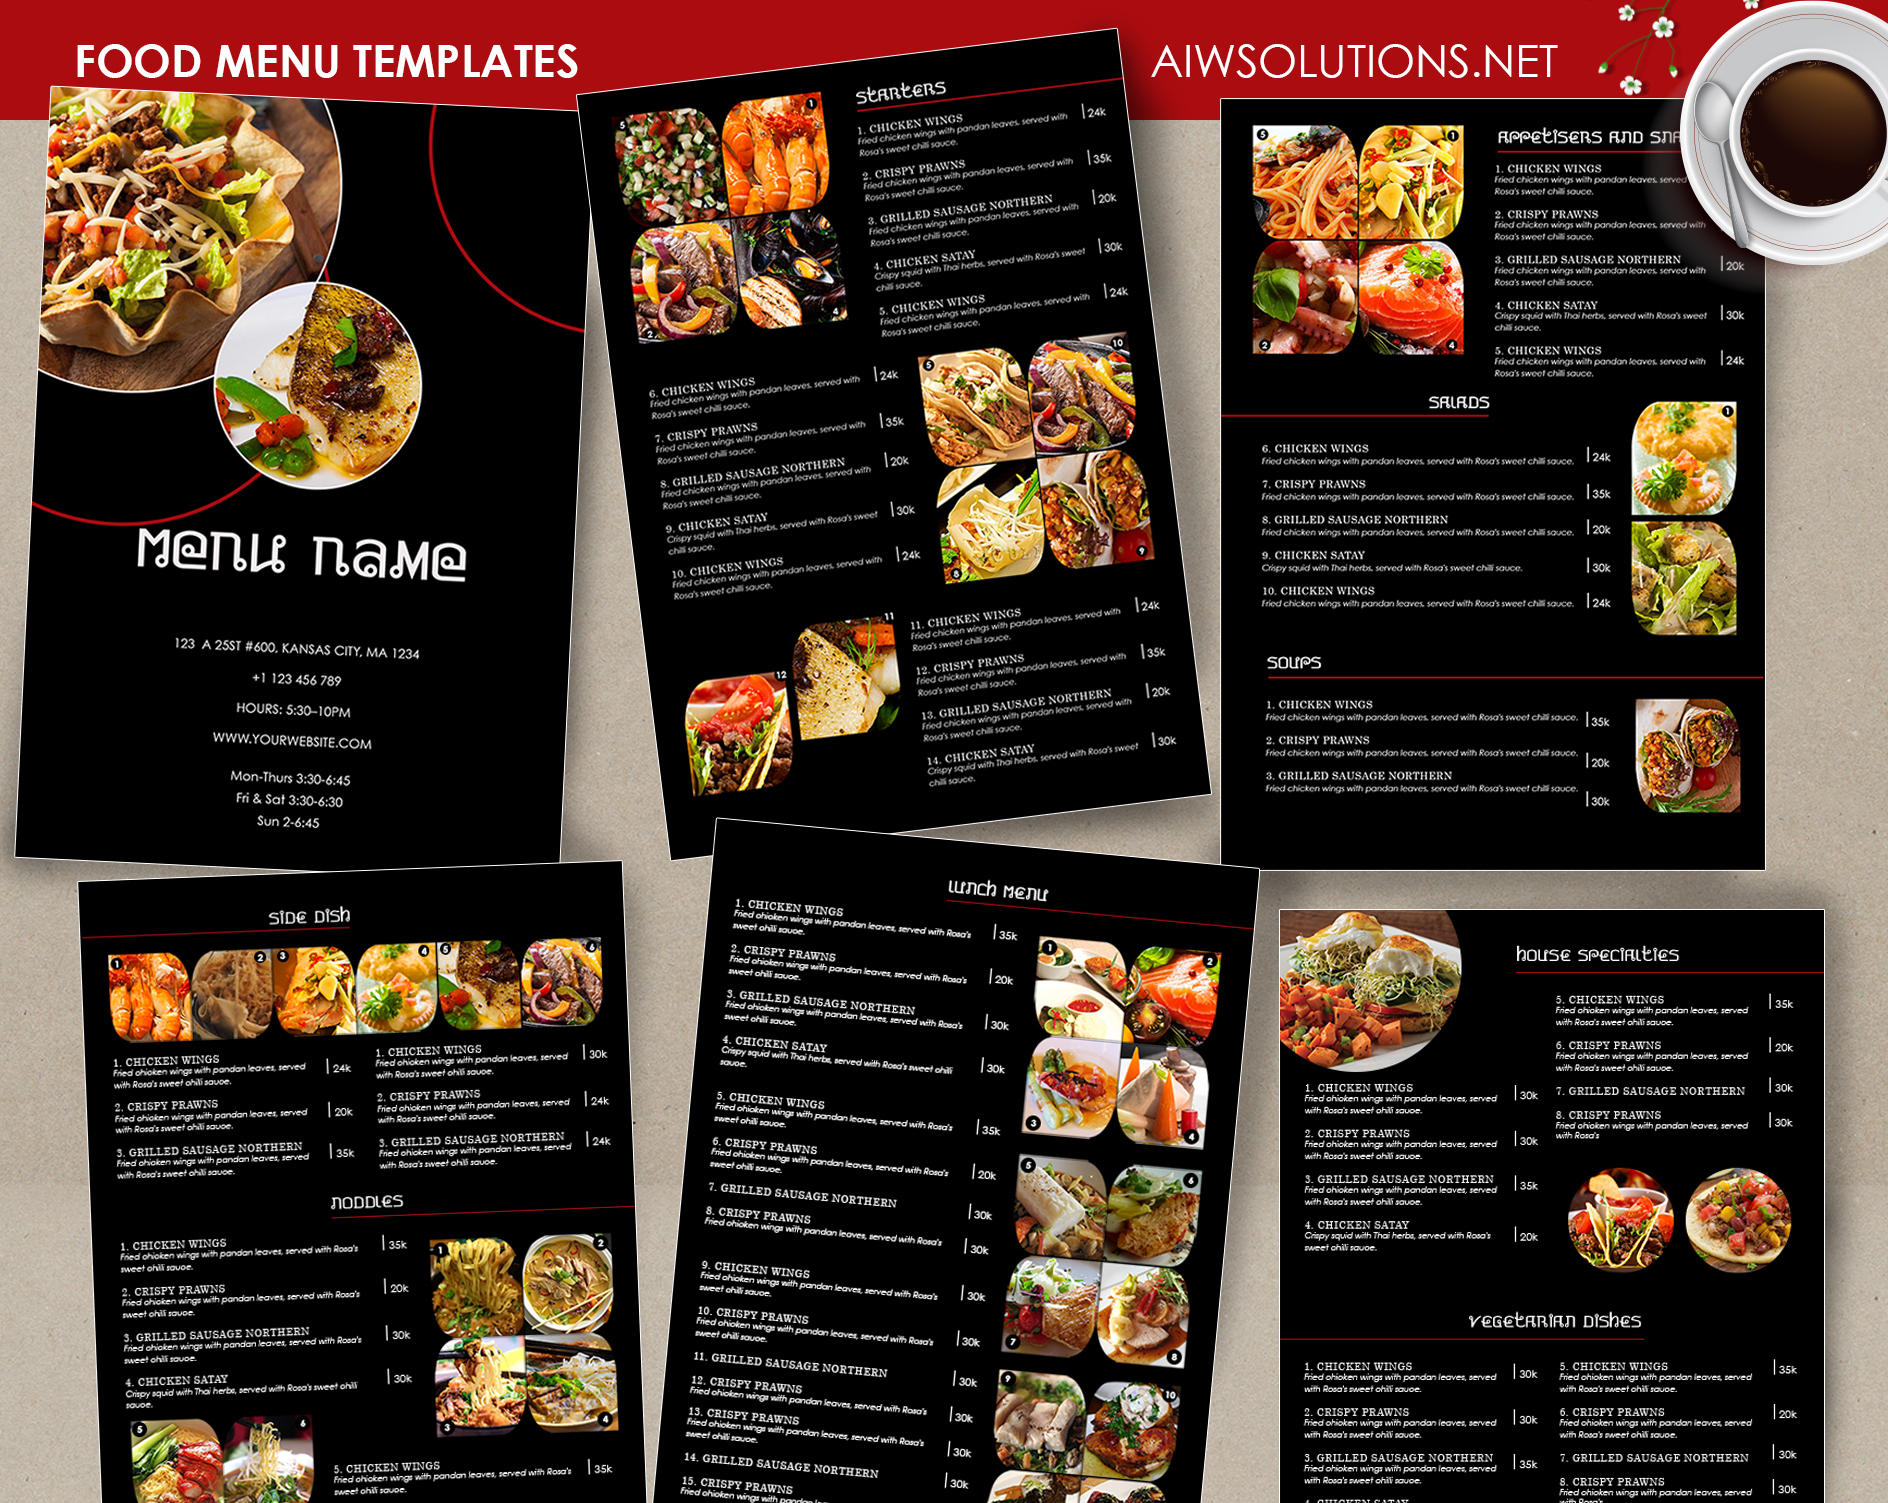 Family restaurant menu aiwsolutions